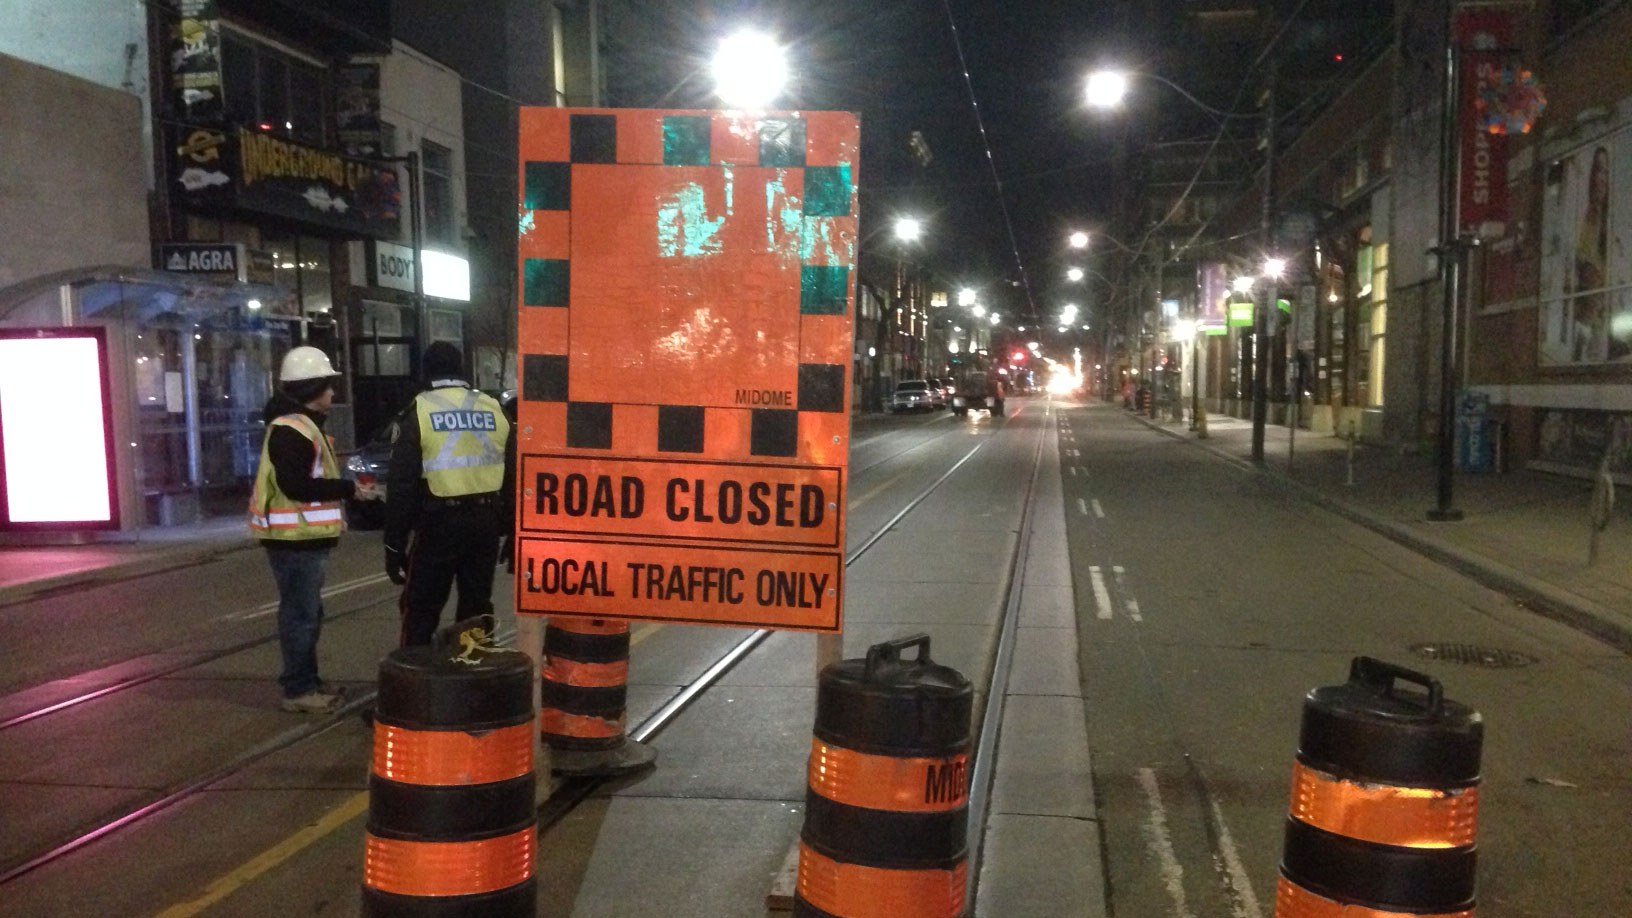 The intersection of King Street and Charlotte Street is closed to traffic from March 29 to April 11, 2016, for TTC track replacement work and sidewalk repairs. CITYNEWS/Bert Dandy.